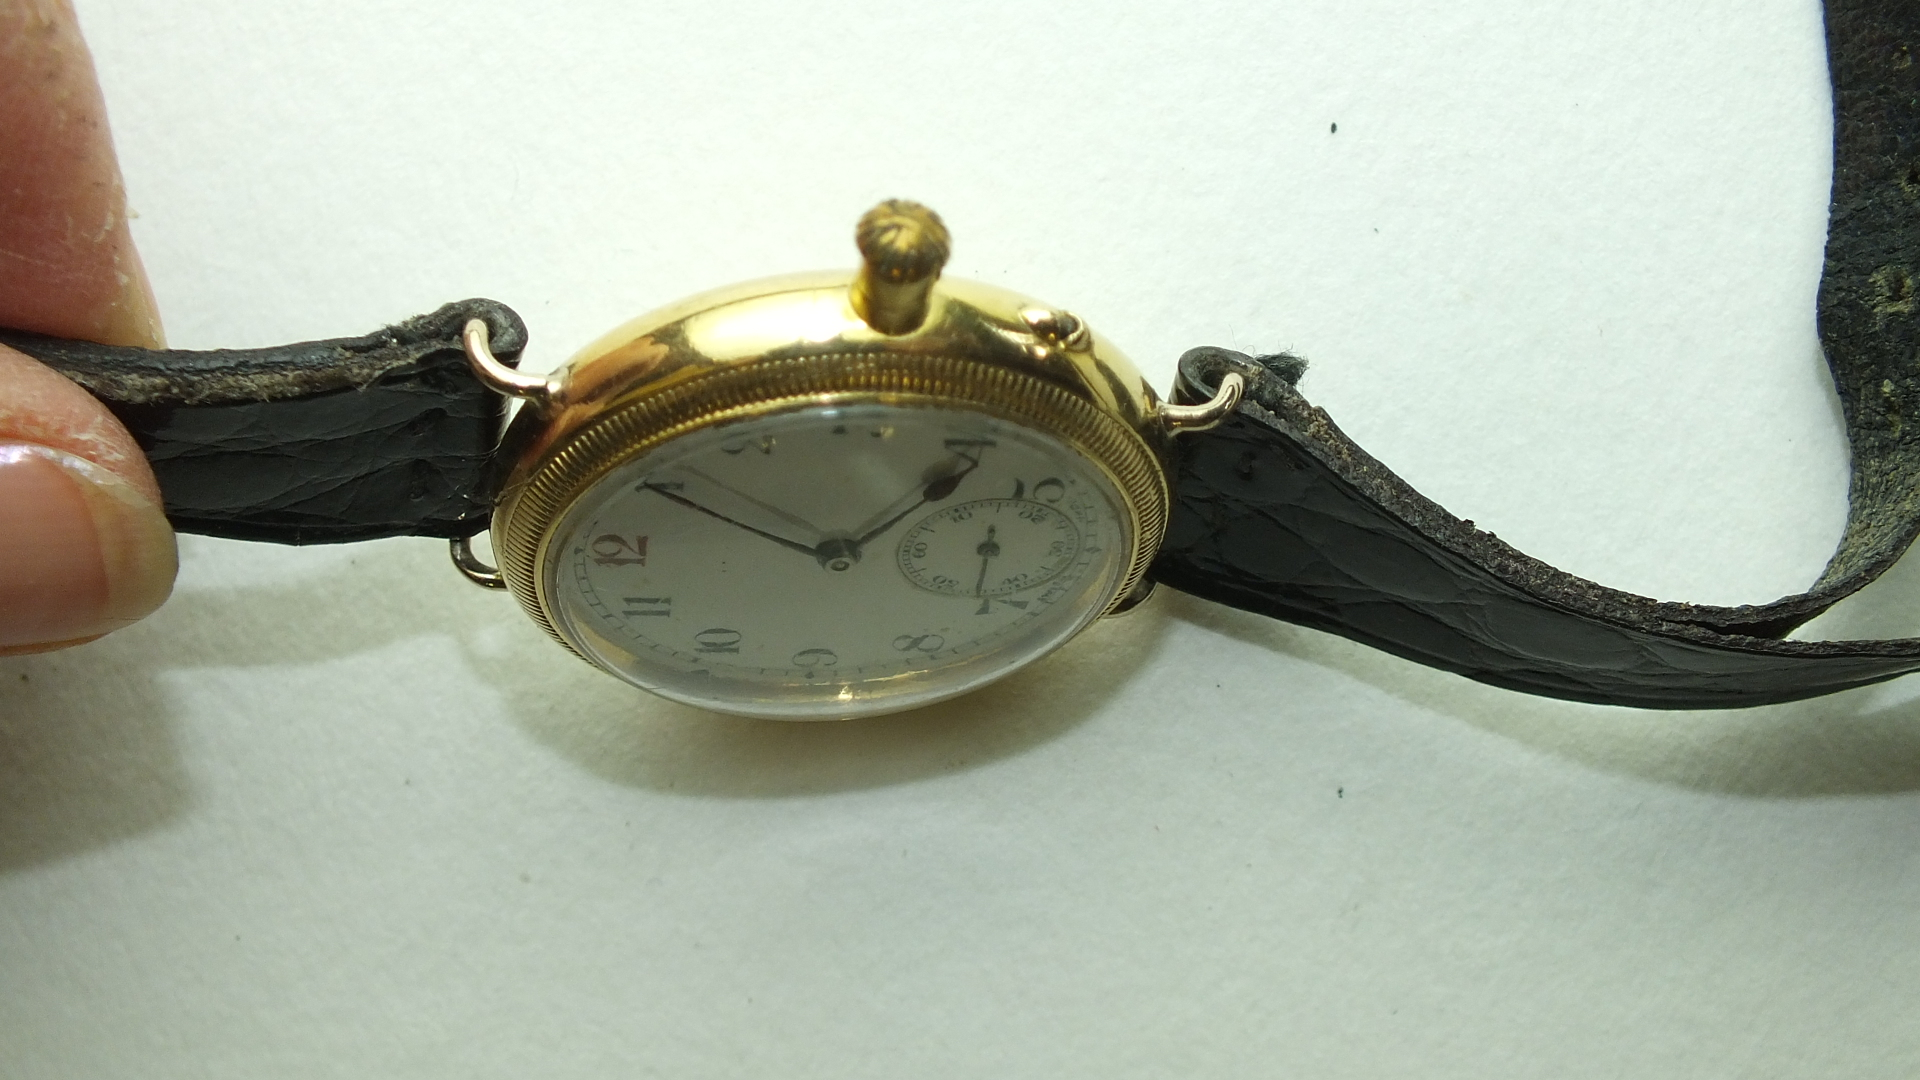 Lot 275 - Longines, a gentleman's 18ct-gold-cased French watch, the white enamel dial with Arabic numerals and